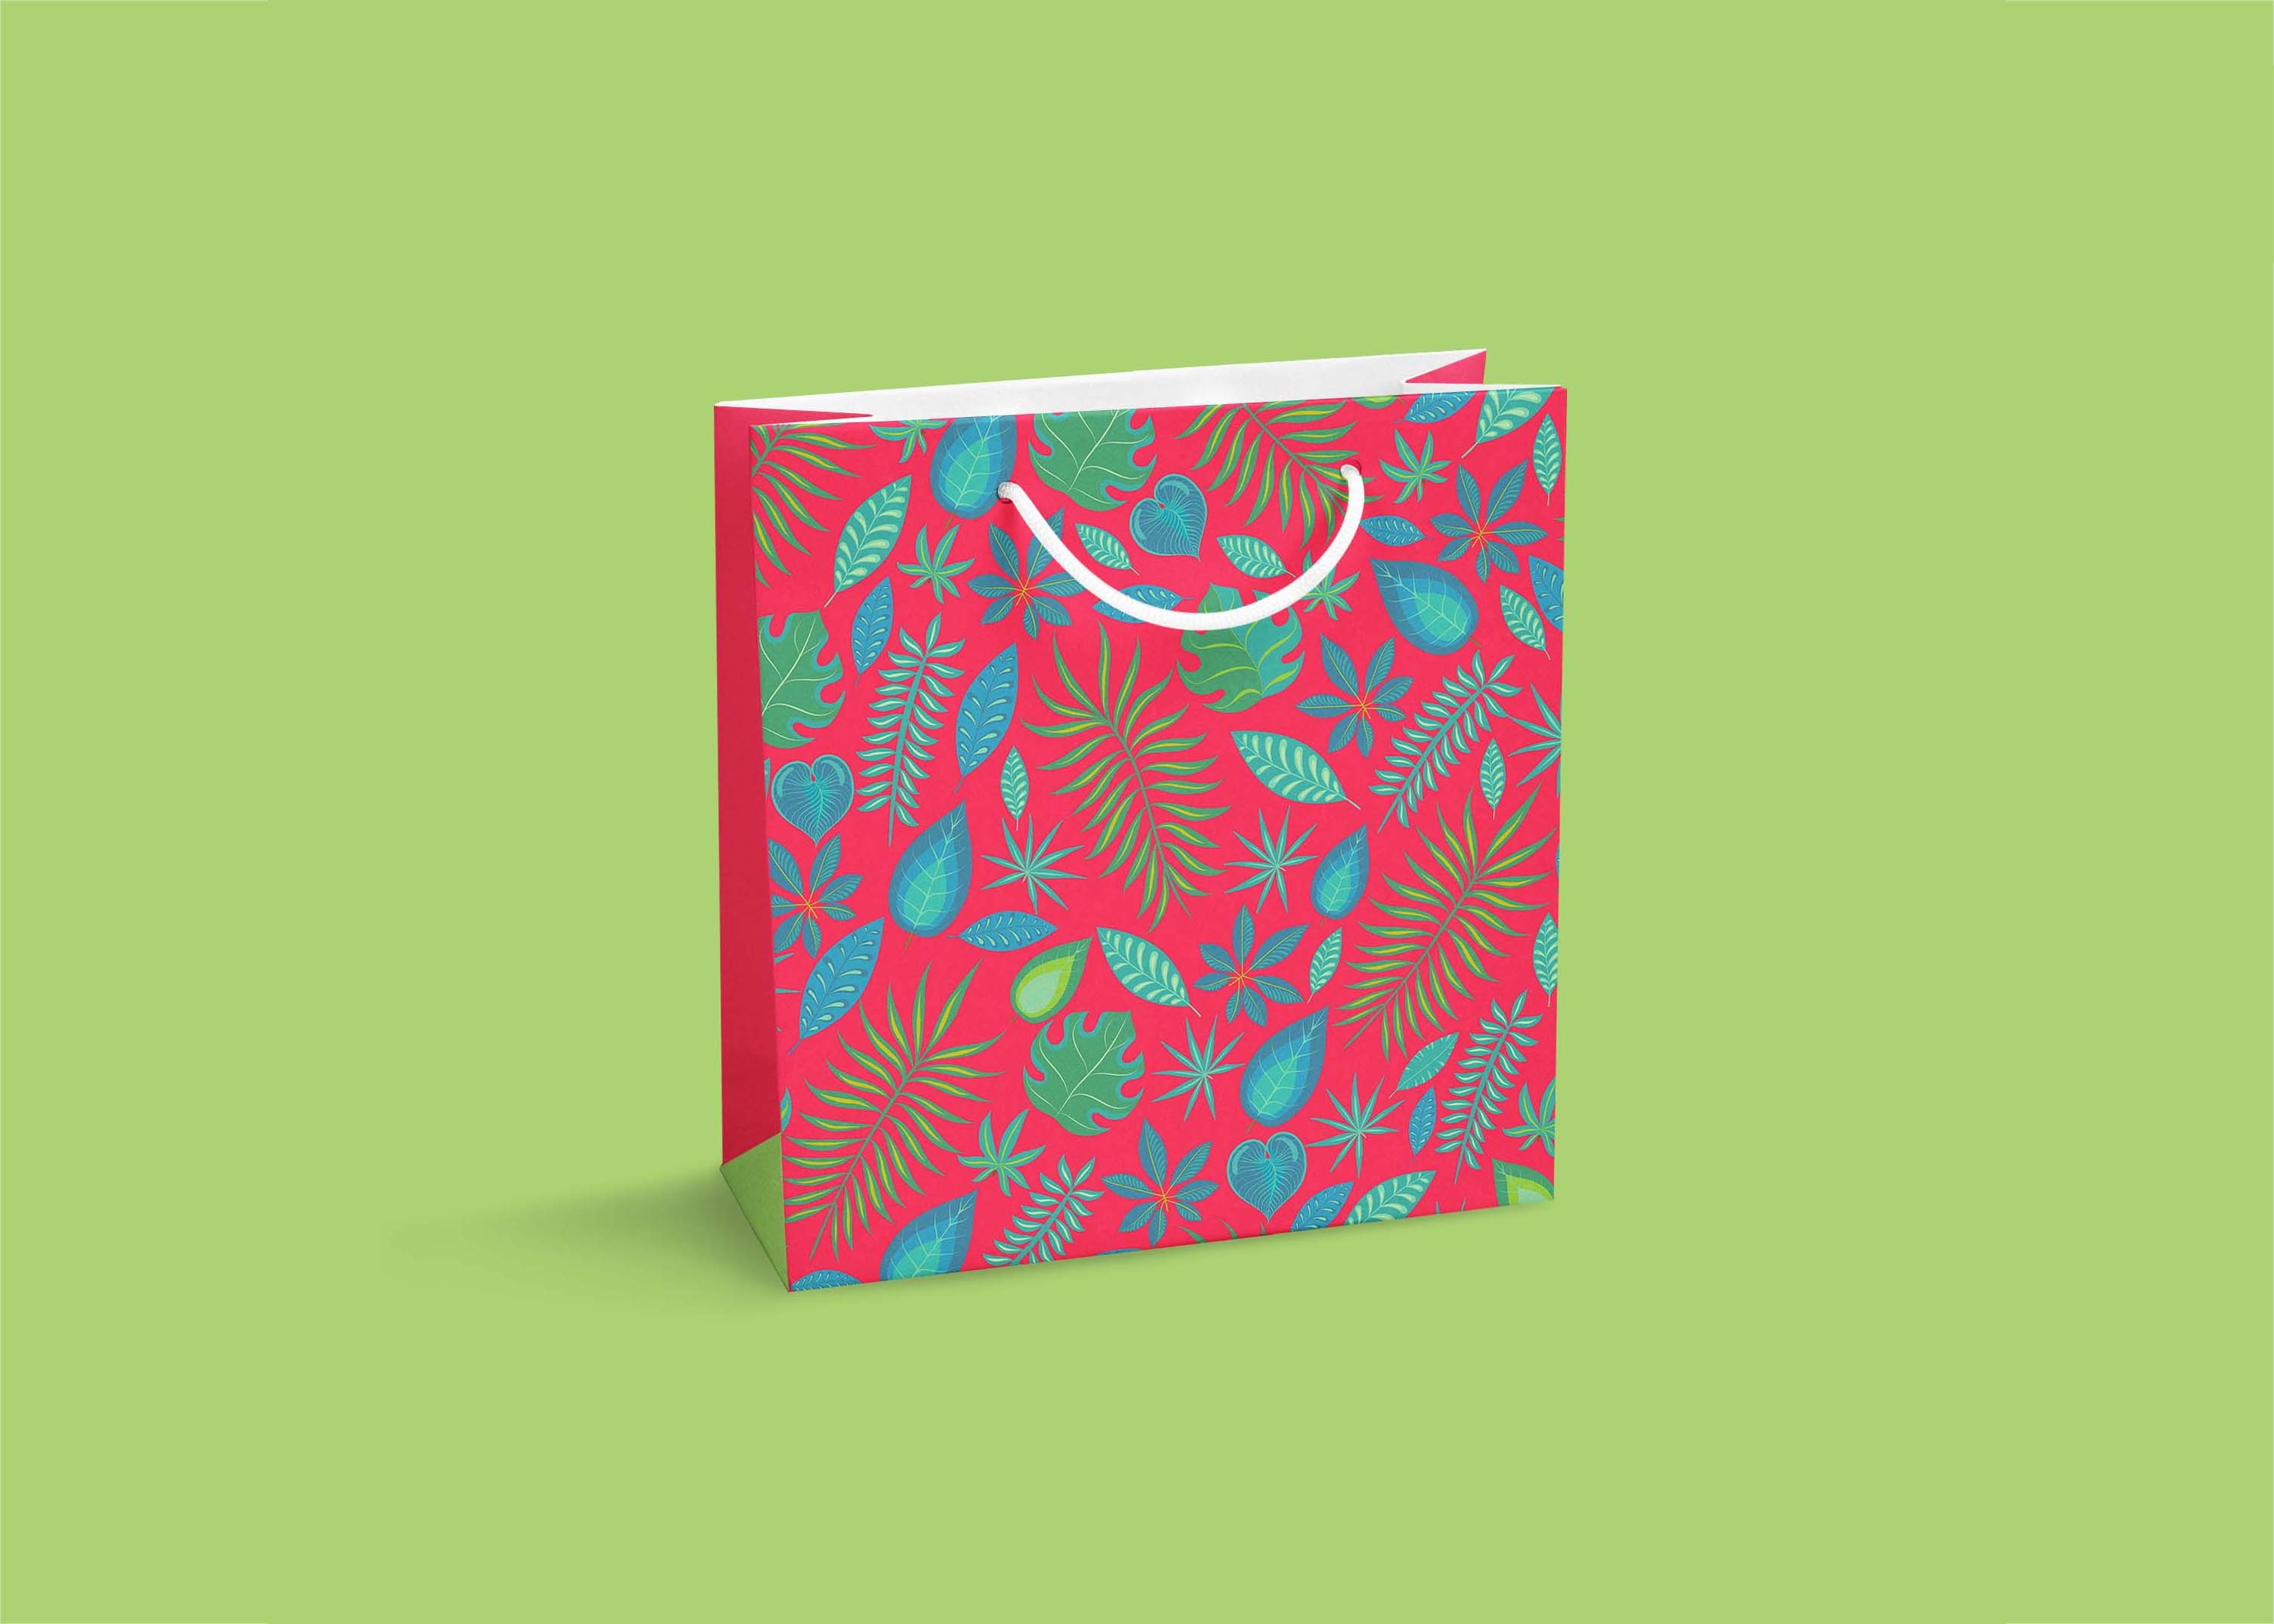 Premium Square Shopping Bag Mockup